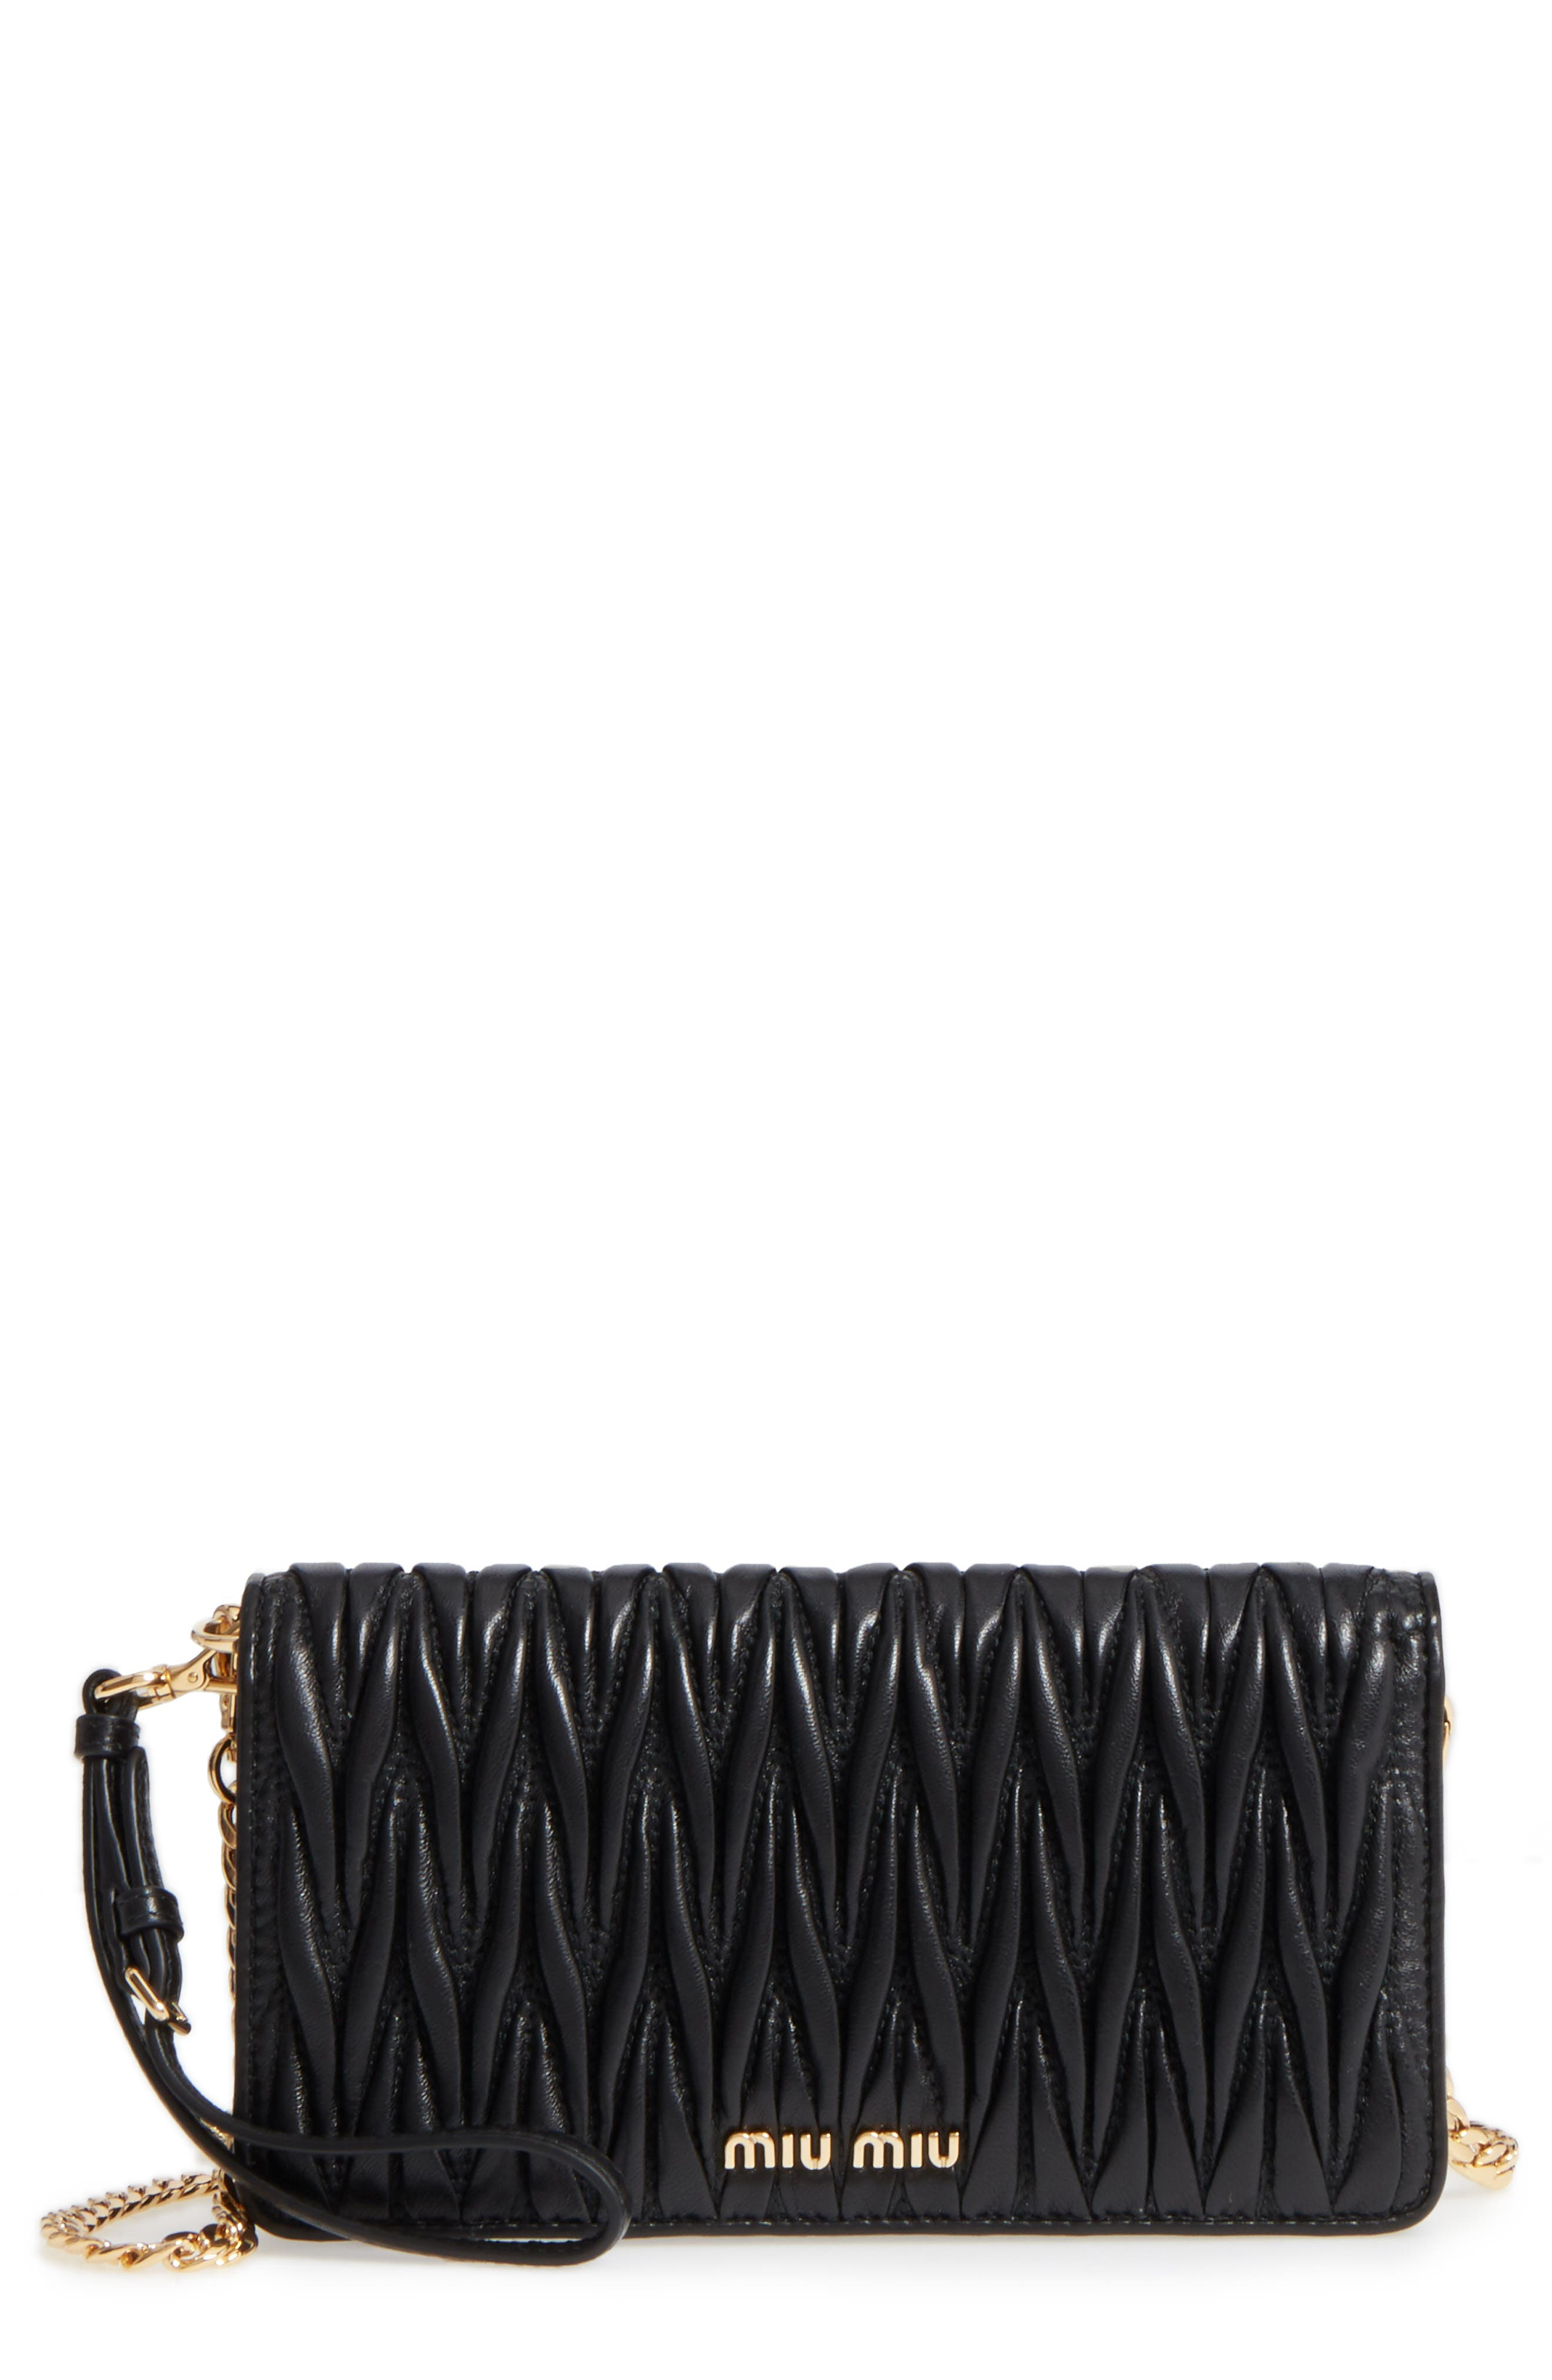 Alternate Image 1 Selected - Miu Miu Matelassé Leather Wallet on a Chain